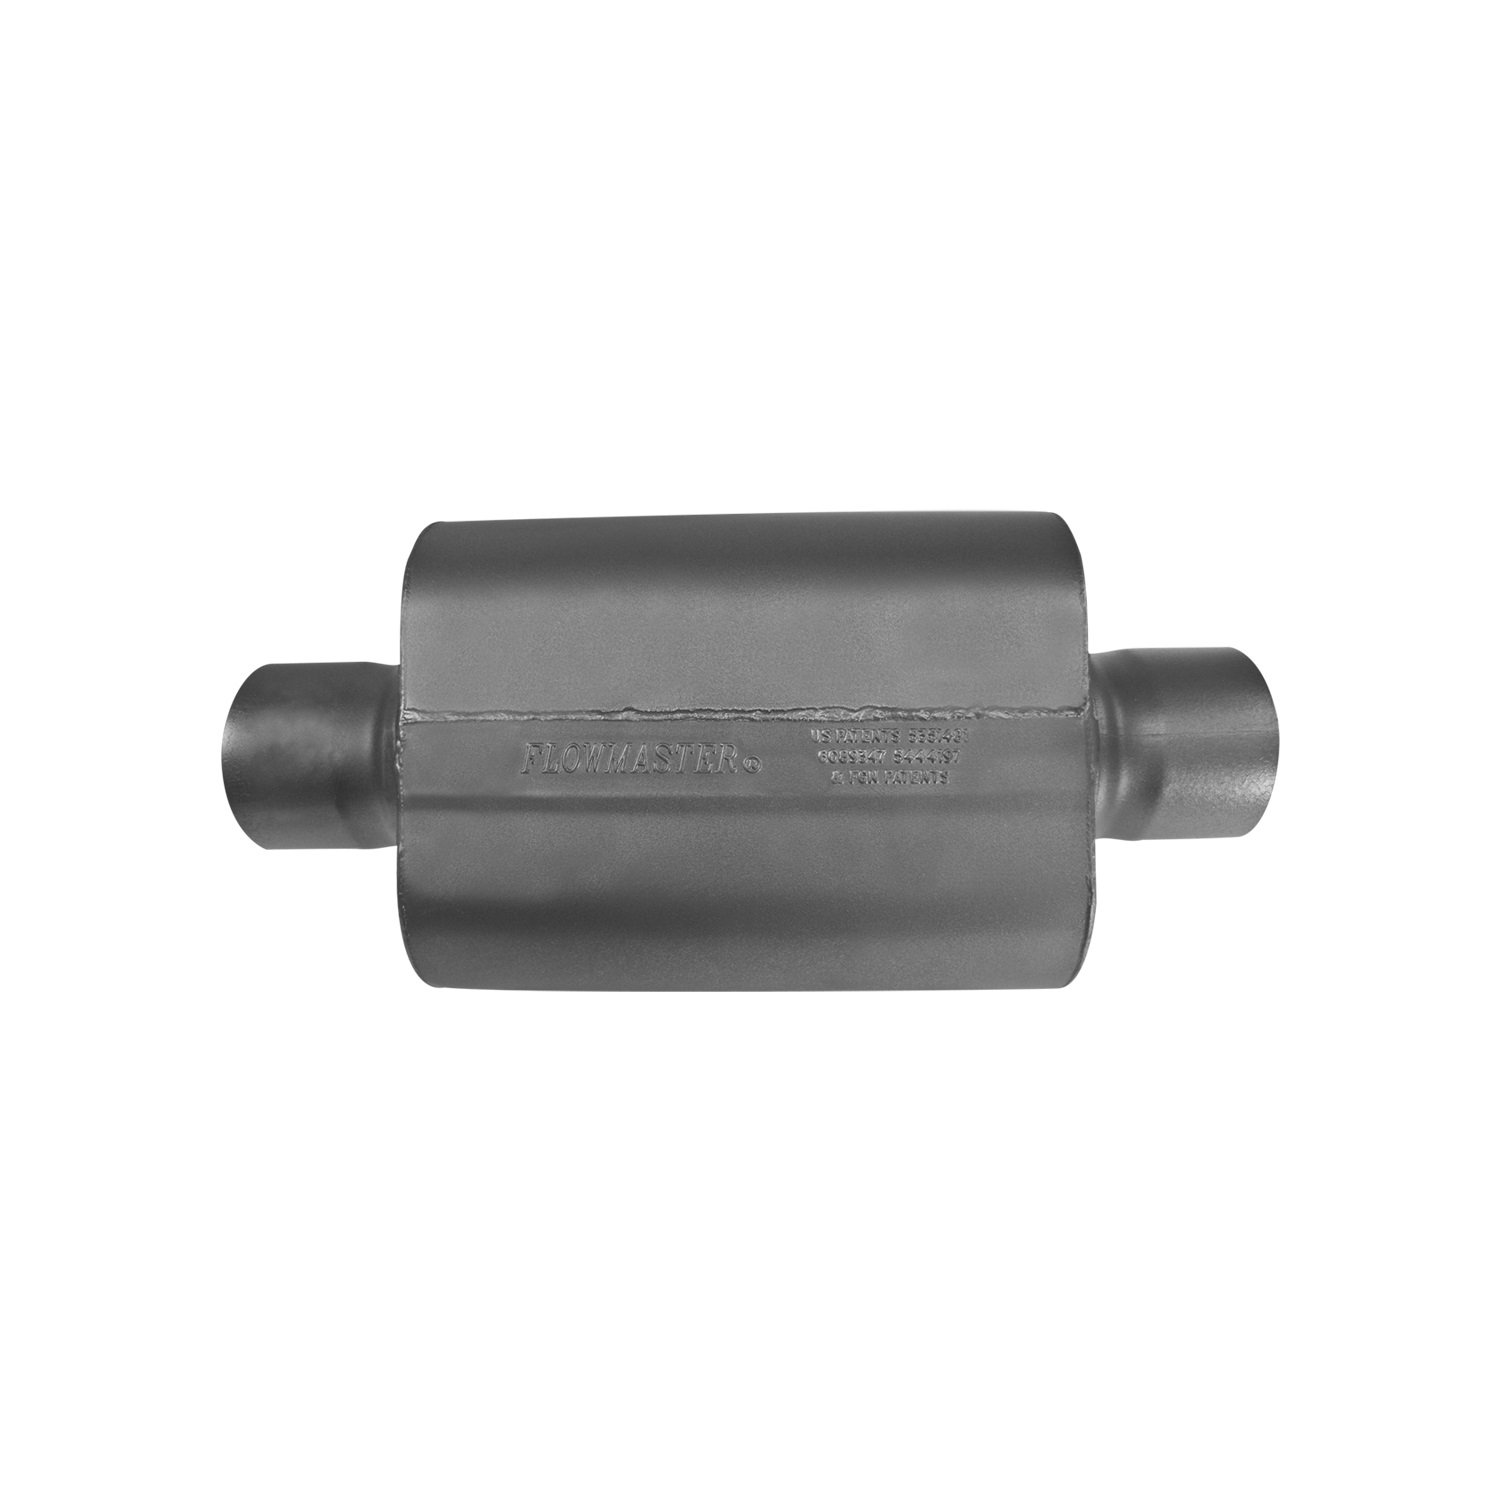 Flowmaster 854040-10 Super 40 Series Delta Force 4.00 Center In and Out 16 Gauge 409S Stainless Steel Exhaust System